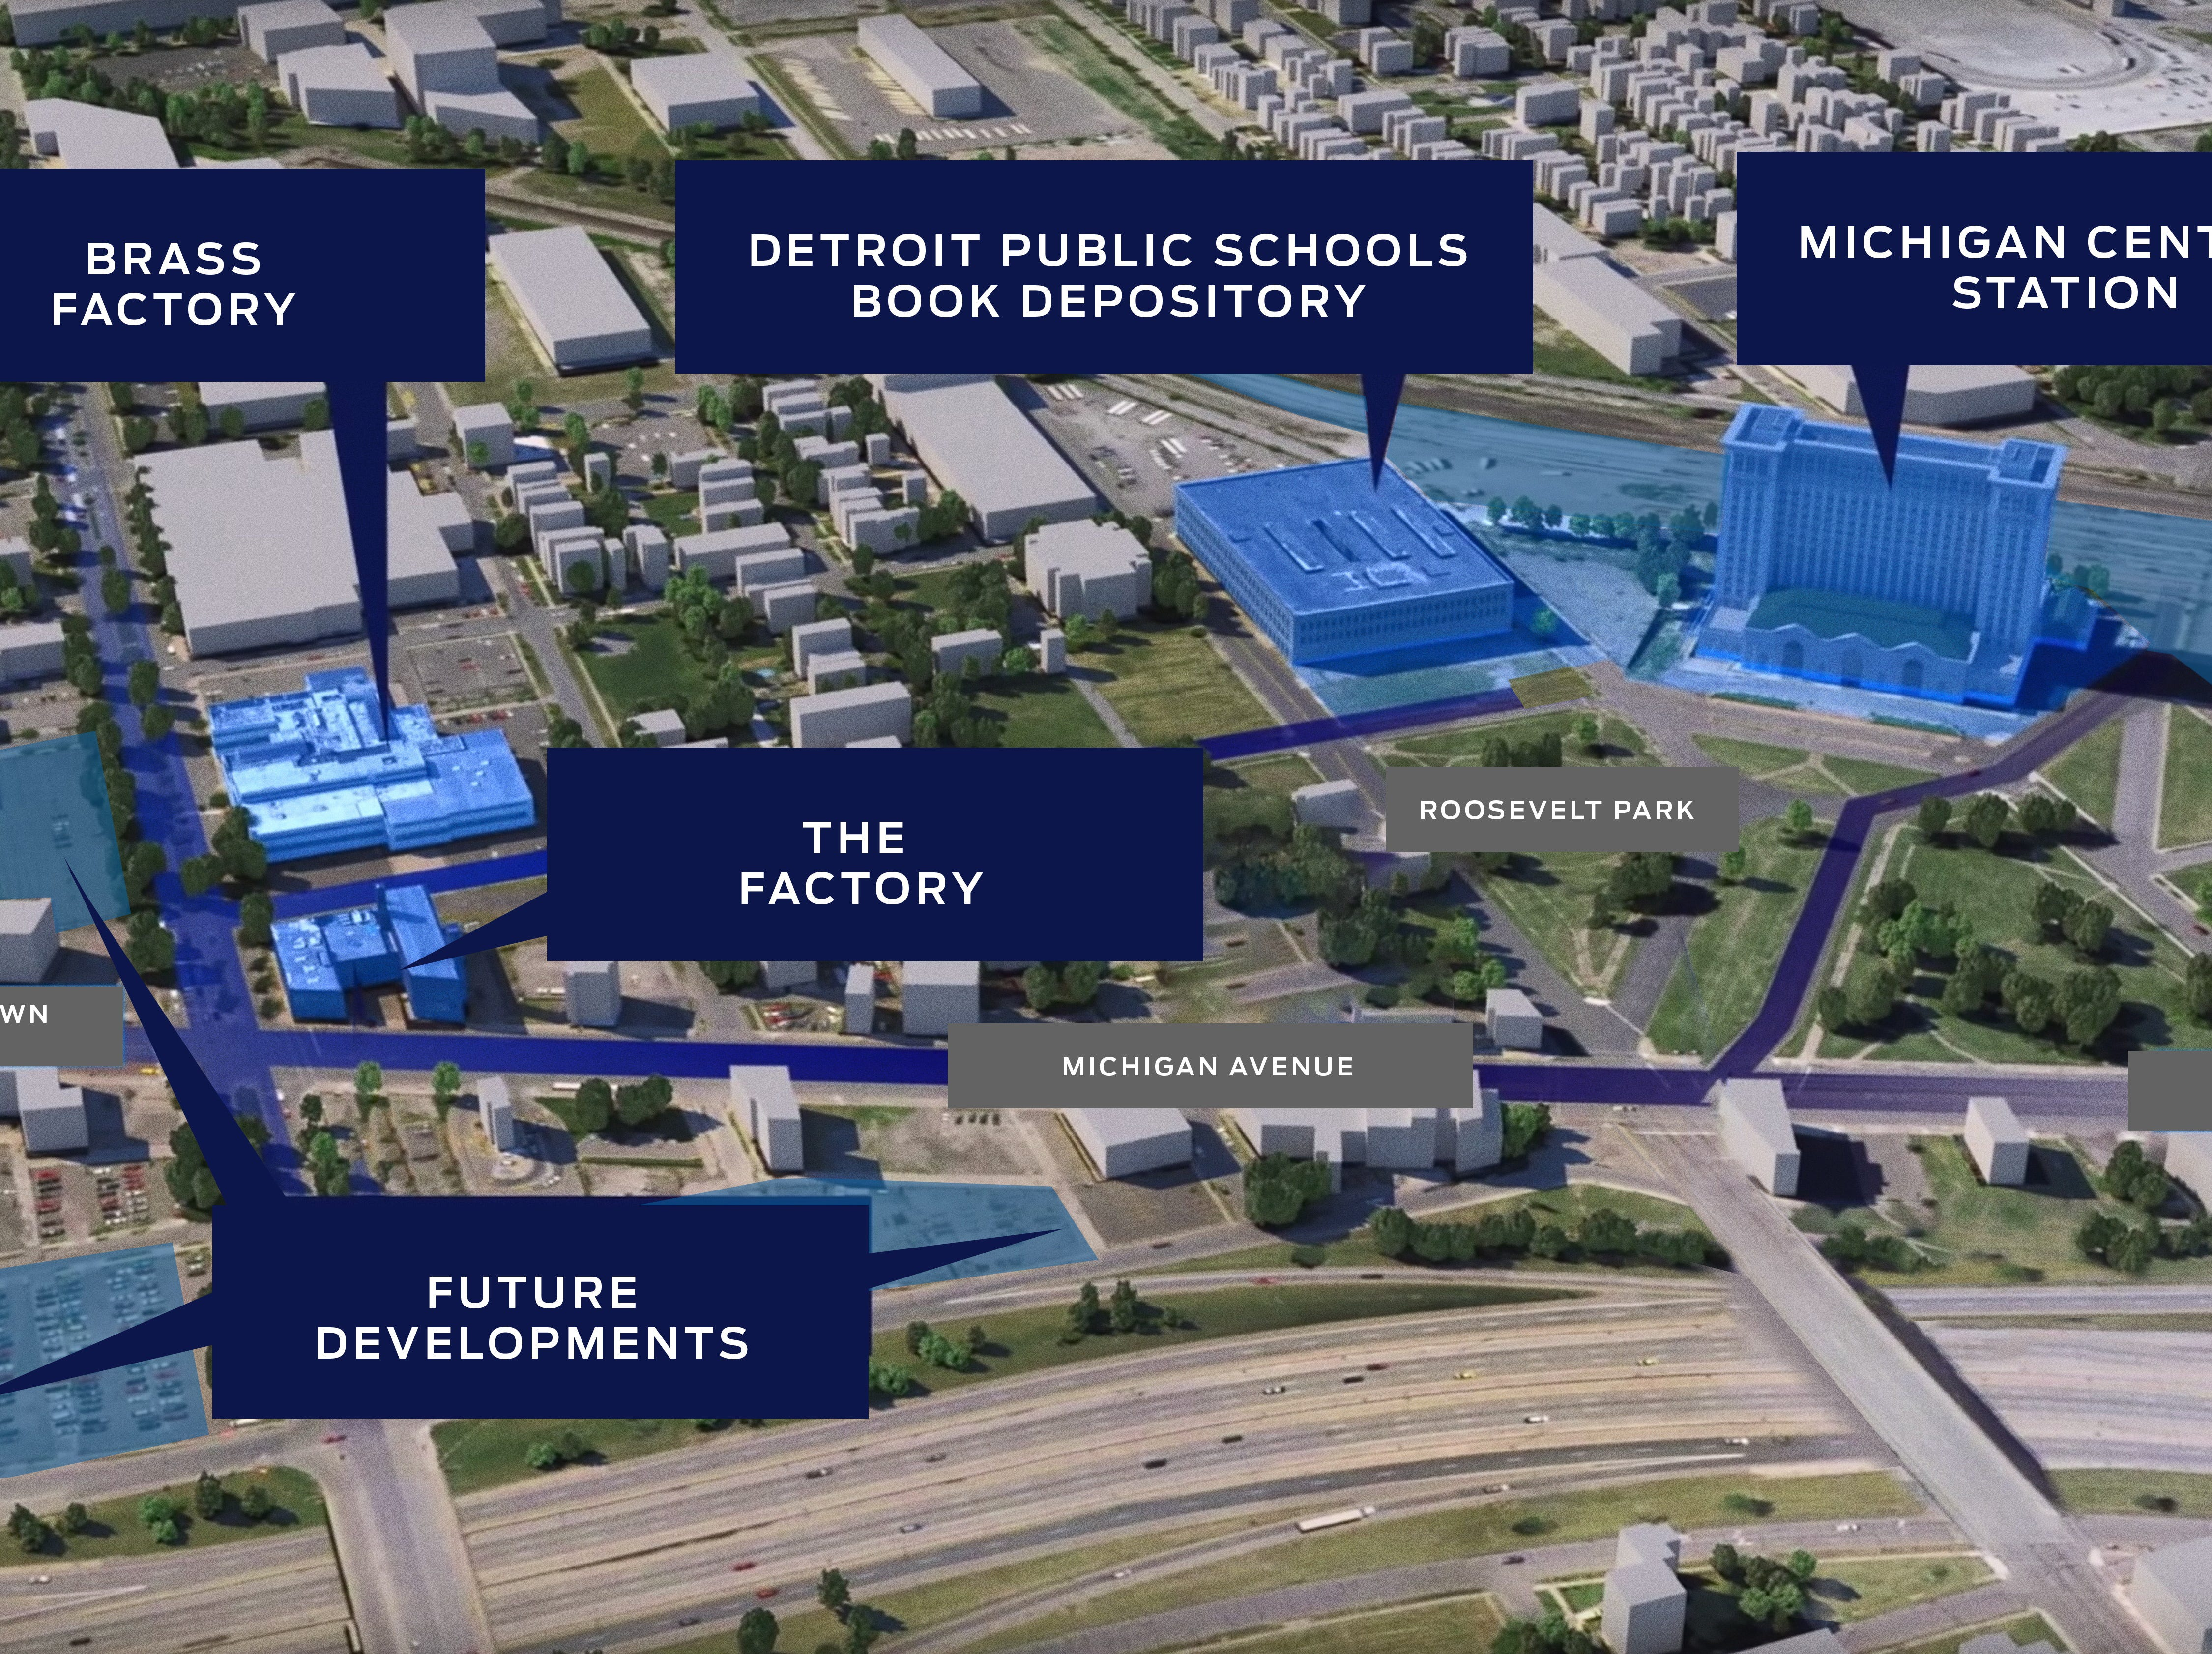 Ford's Corktown development map includes existing buildings near the Michigan Central Station as well as several vacant plots.